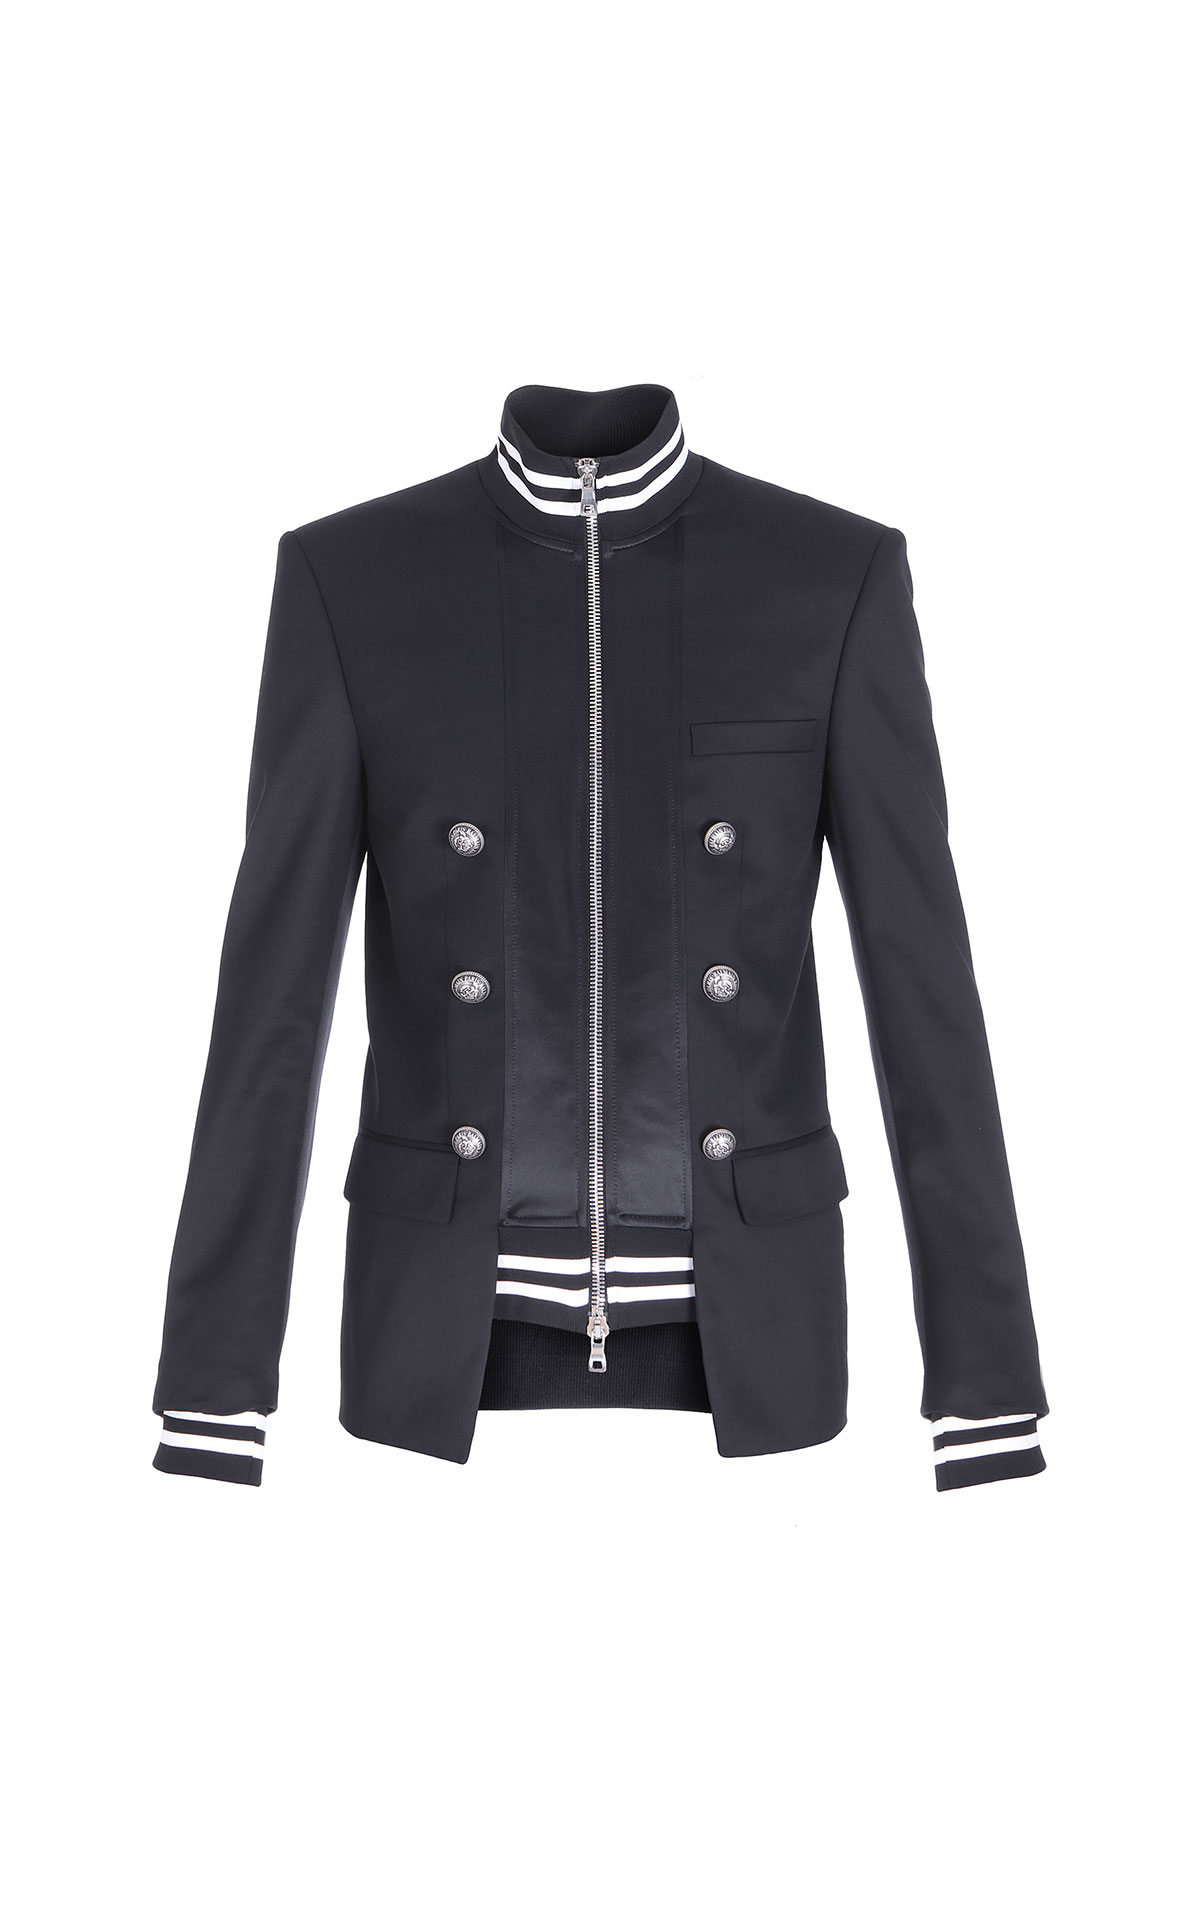 Balmain Double-breasted layered bomber jacket from Bicester Village